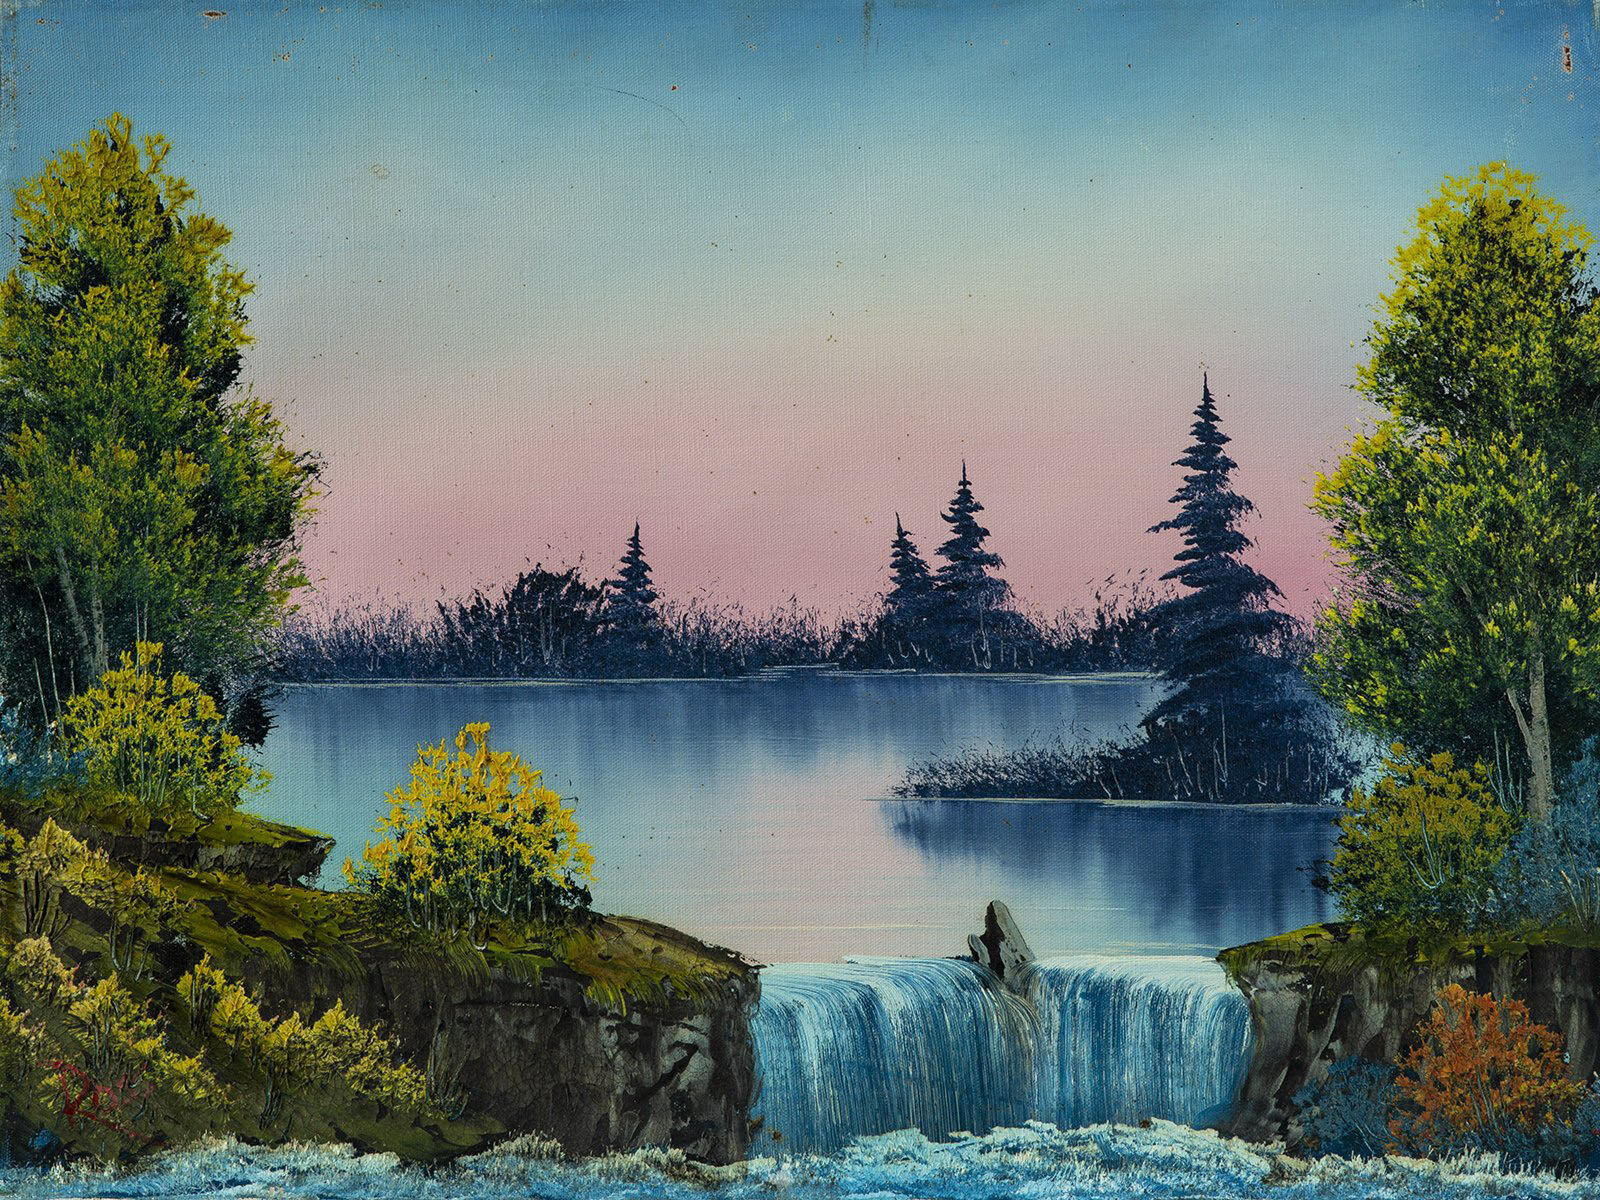 Bob Ross, Misty Waterfall, Original Oil Painting, 1980. Image Used with Permission © Modern Artifact.